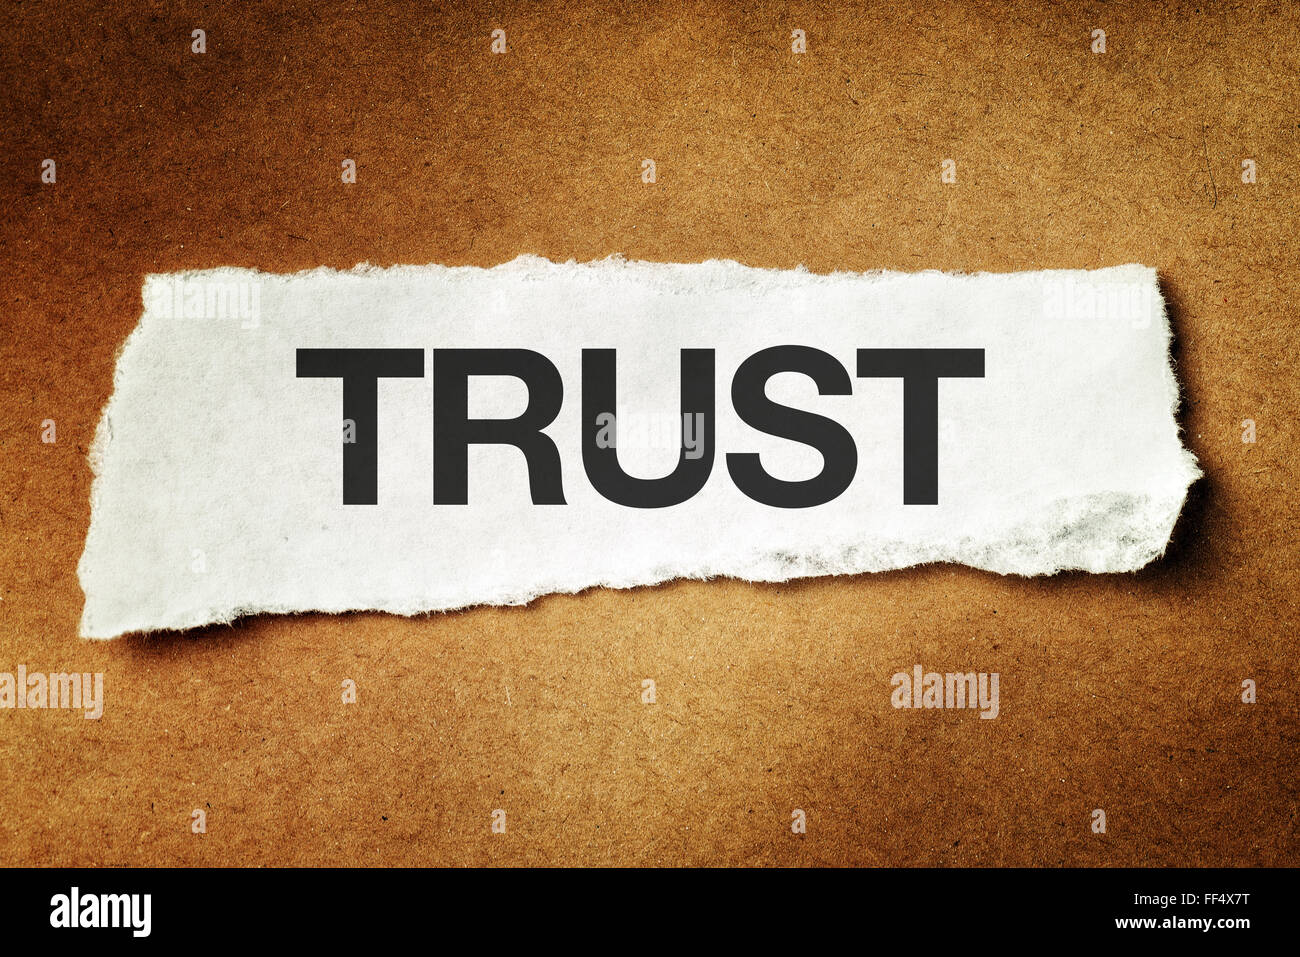 Trust printed on scrap paper, concept of faith, confidence and trustworthy. - Stock Image